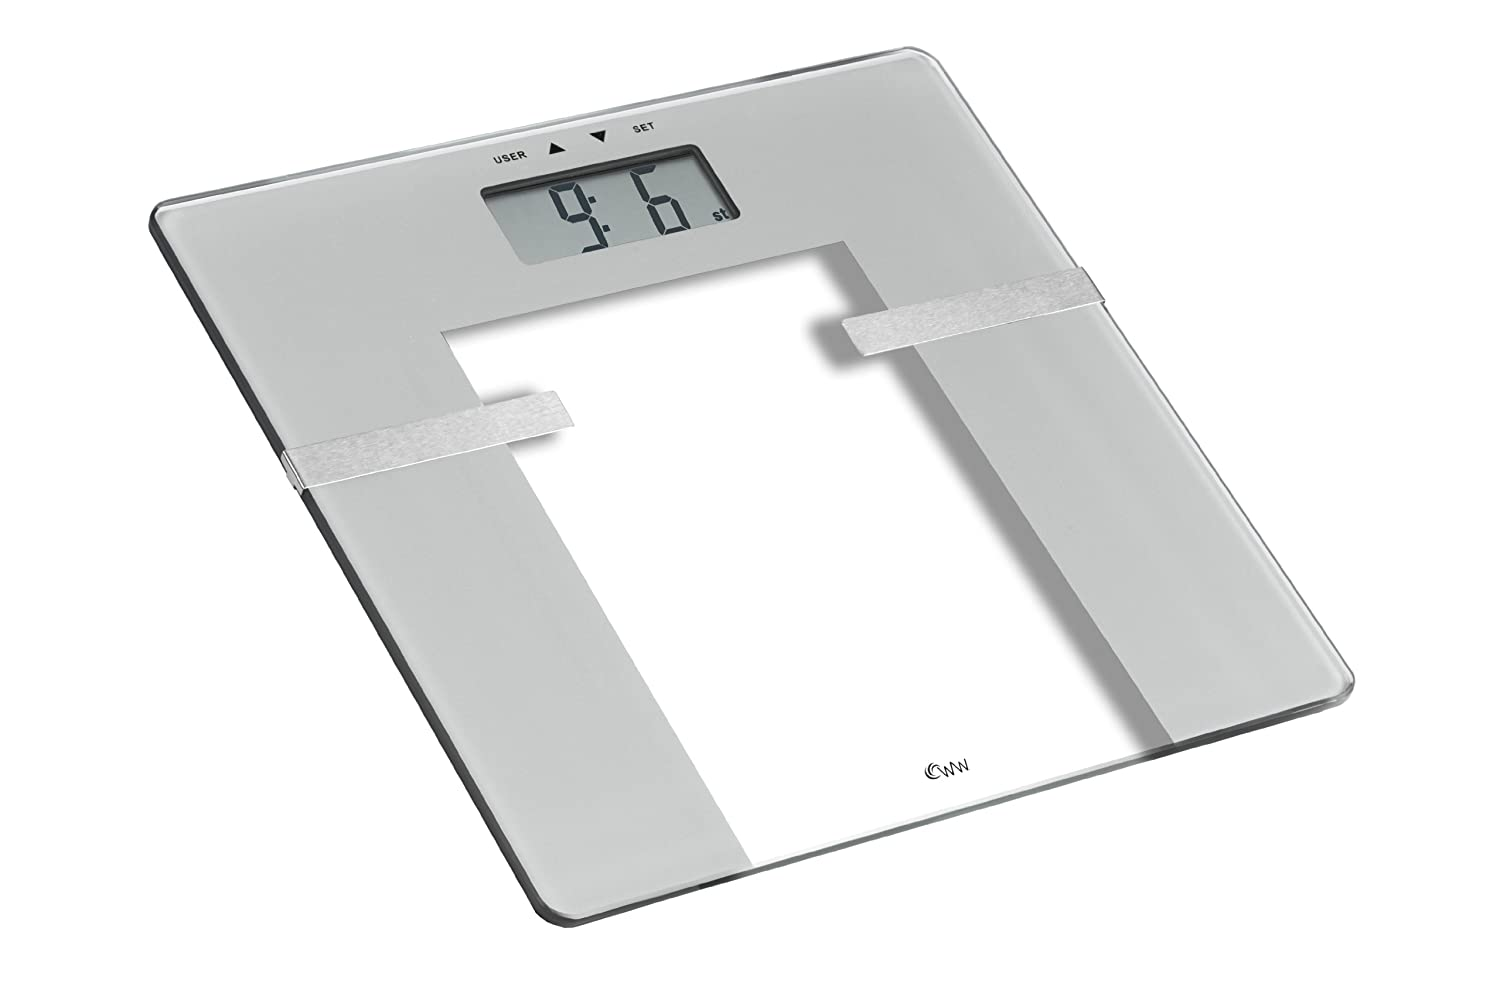 Bmi bathroom scales - Weight Watchers Ultra Slim Glass Body Analysis Scale Weight Watchers Amazon Co Uk Health Personal Care